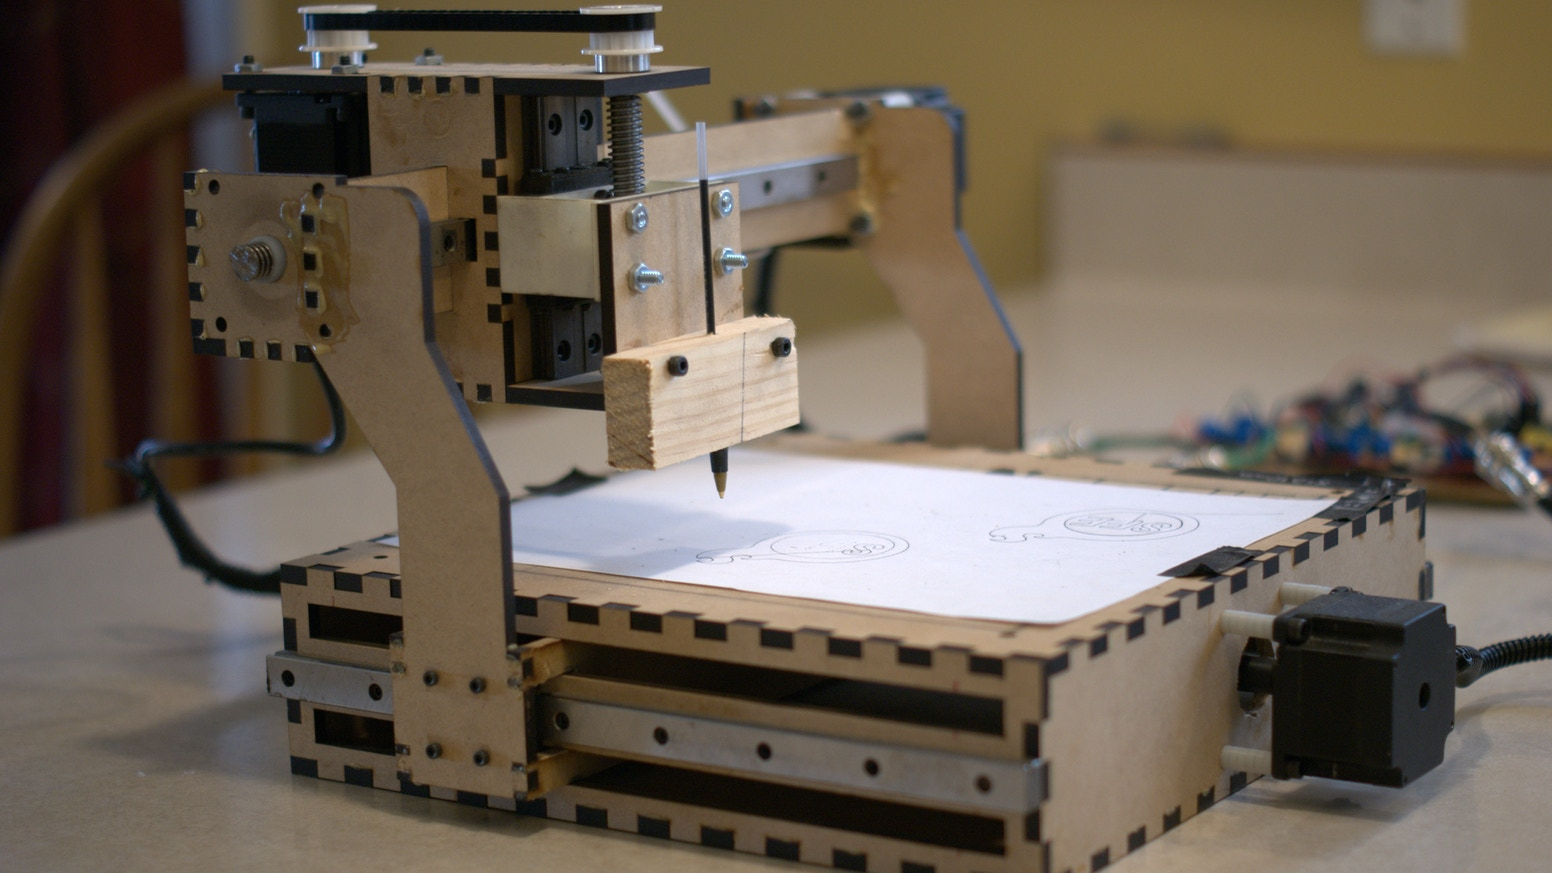 Project Shapeoko A 300 Complete Cnc Machine By Edward Ford